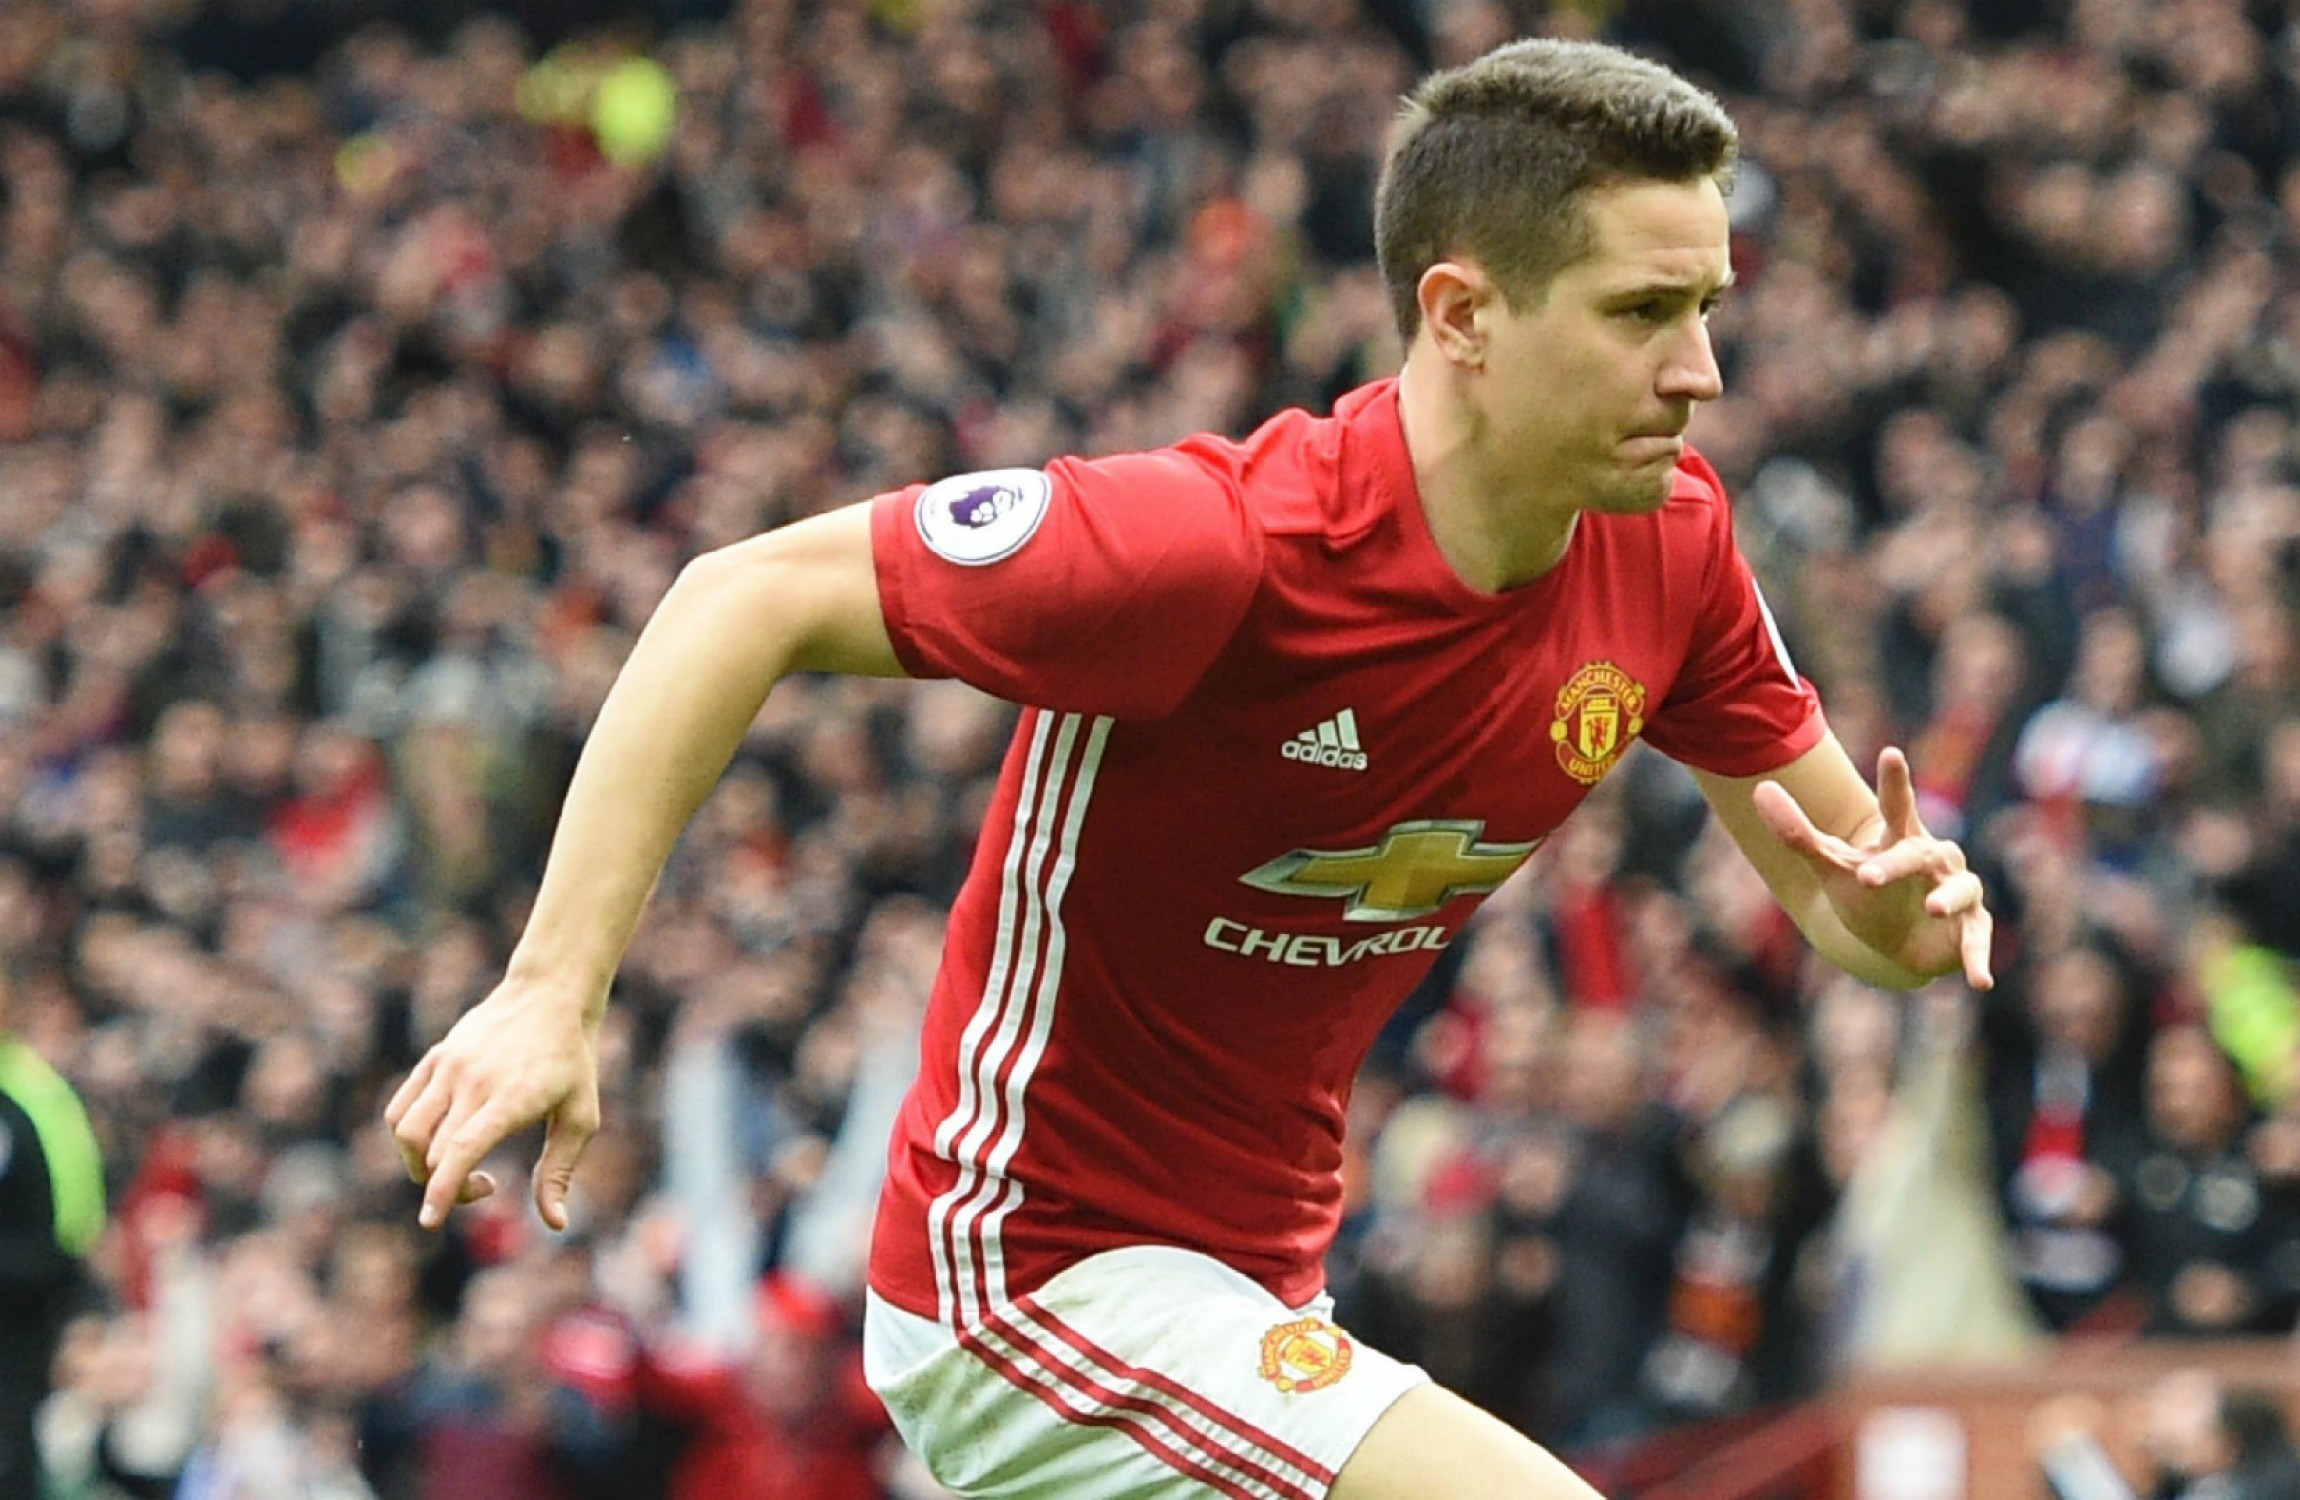 Ander Herrera named Manchester United's Player of the Year